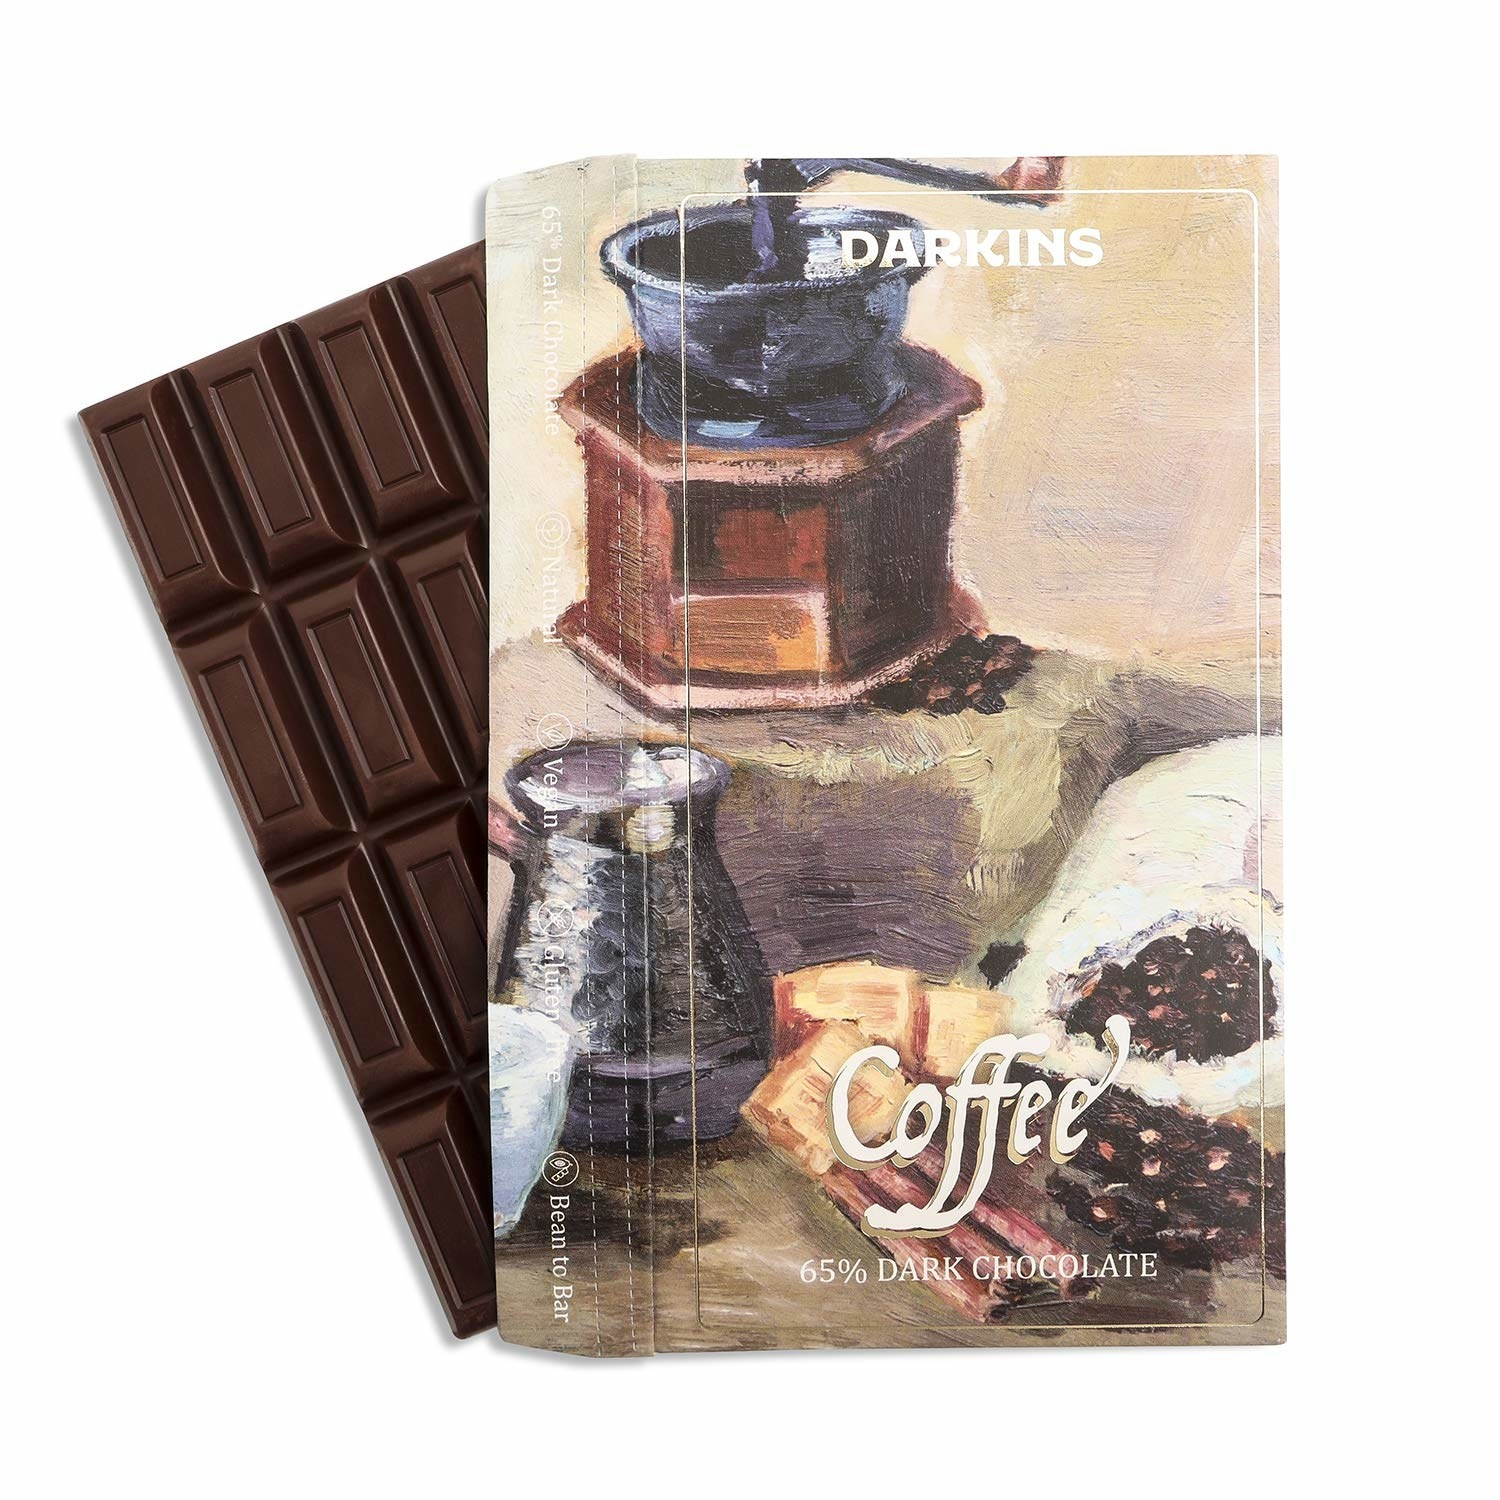 The dark chocolate with a beautiful water colour illustration of a coffee machine and coffee beans on it